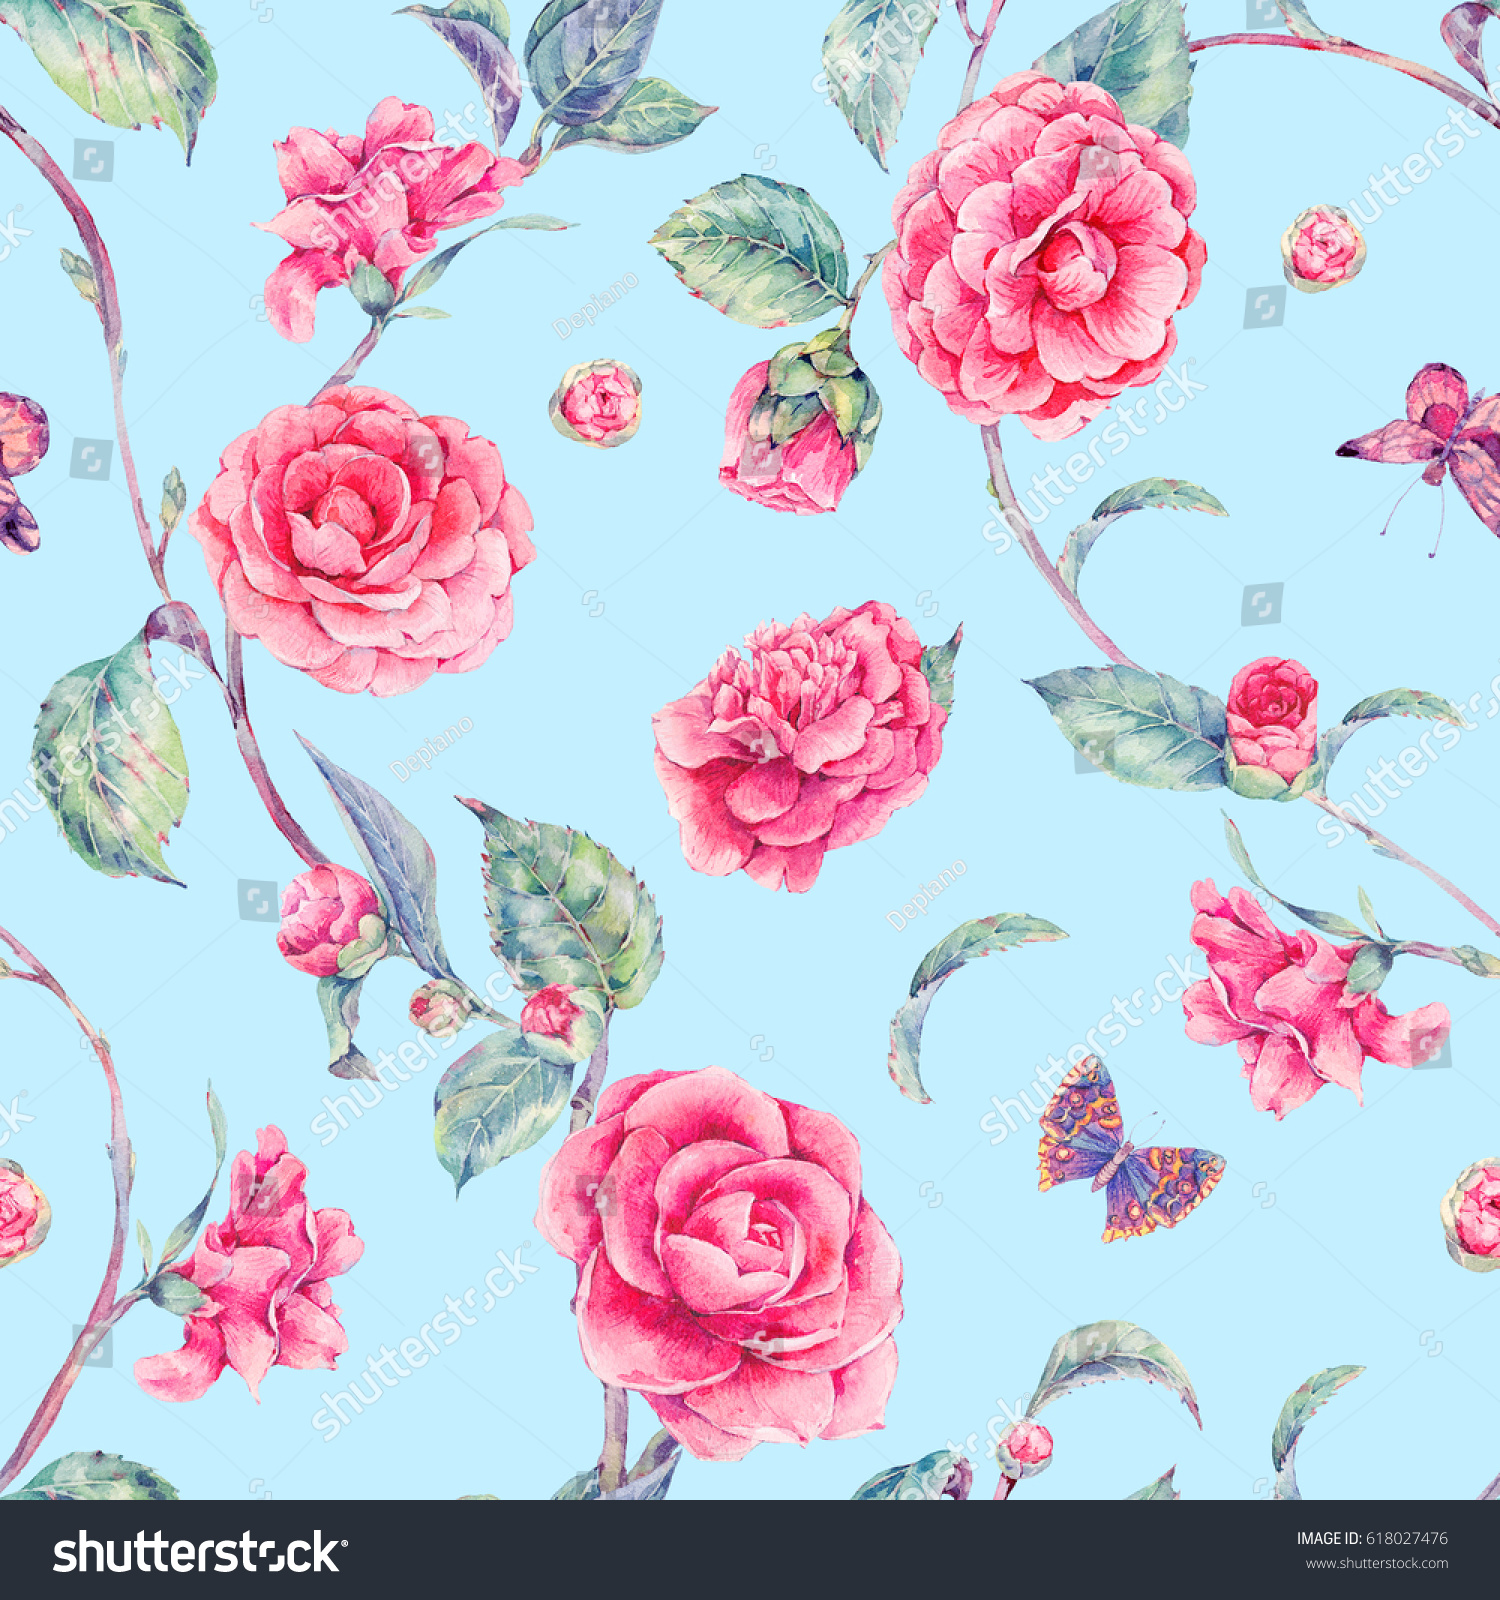 Vintage Garden Watercolor Natural Seamless Pattern With Pink Flowers